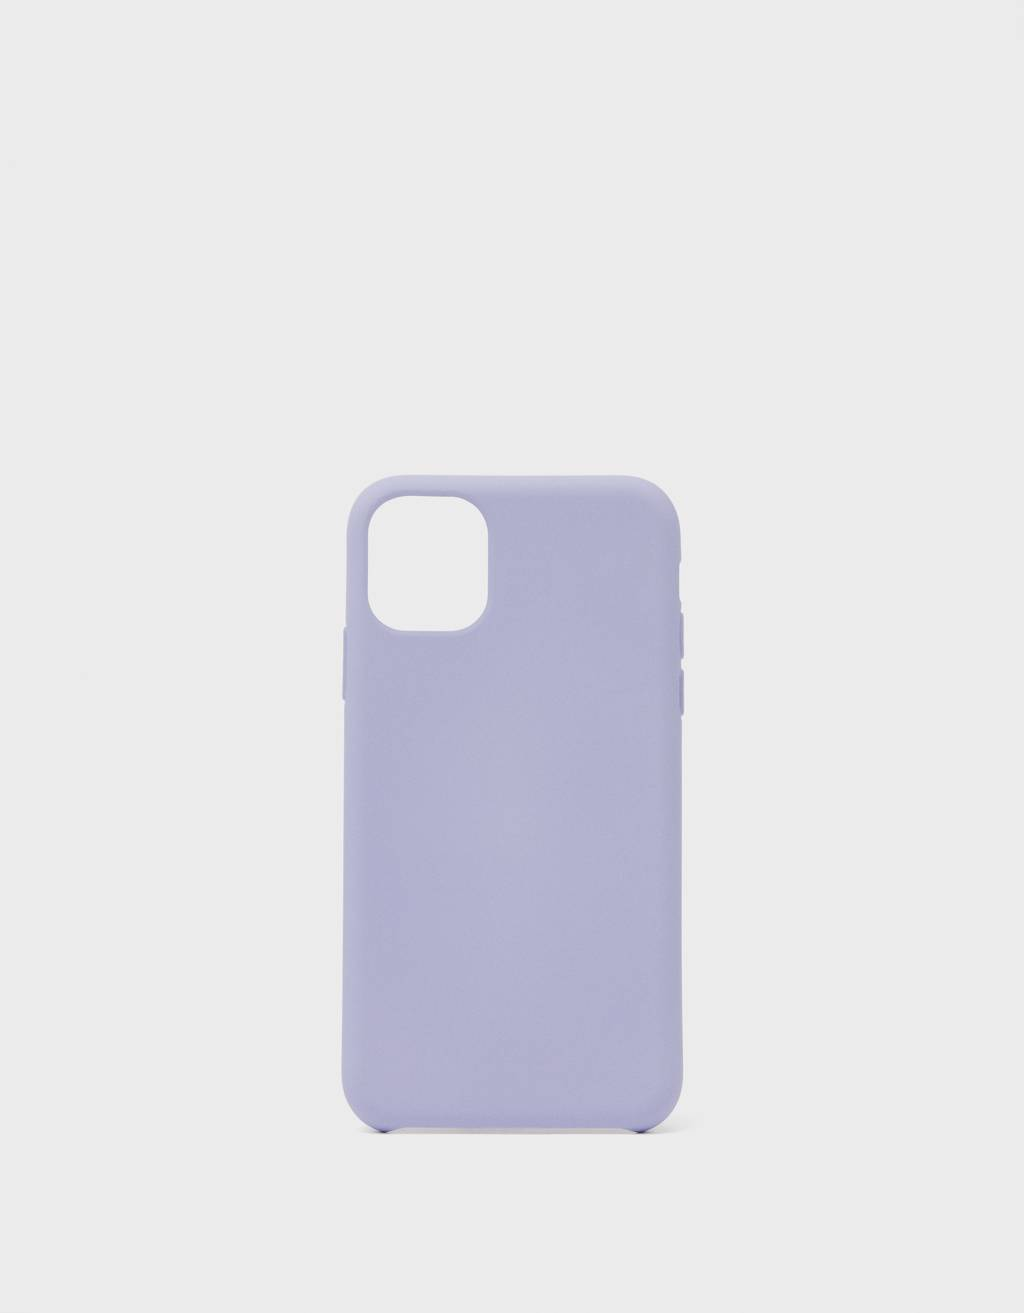 Monochrome iPhone 11 case